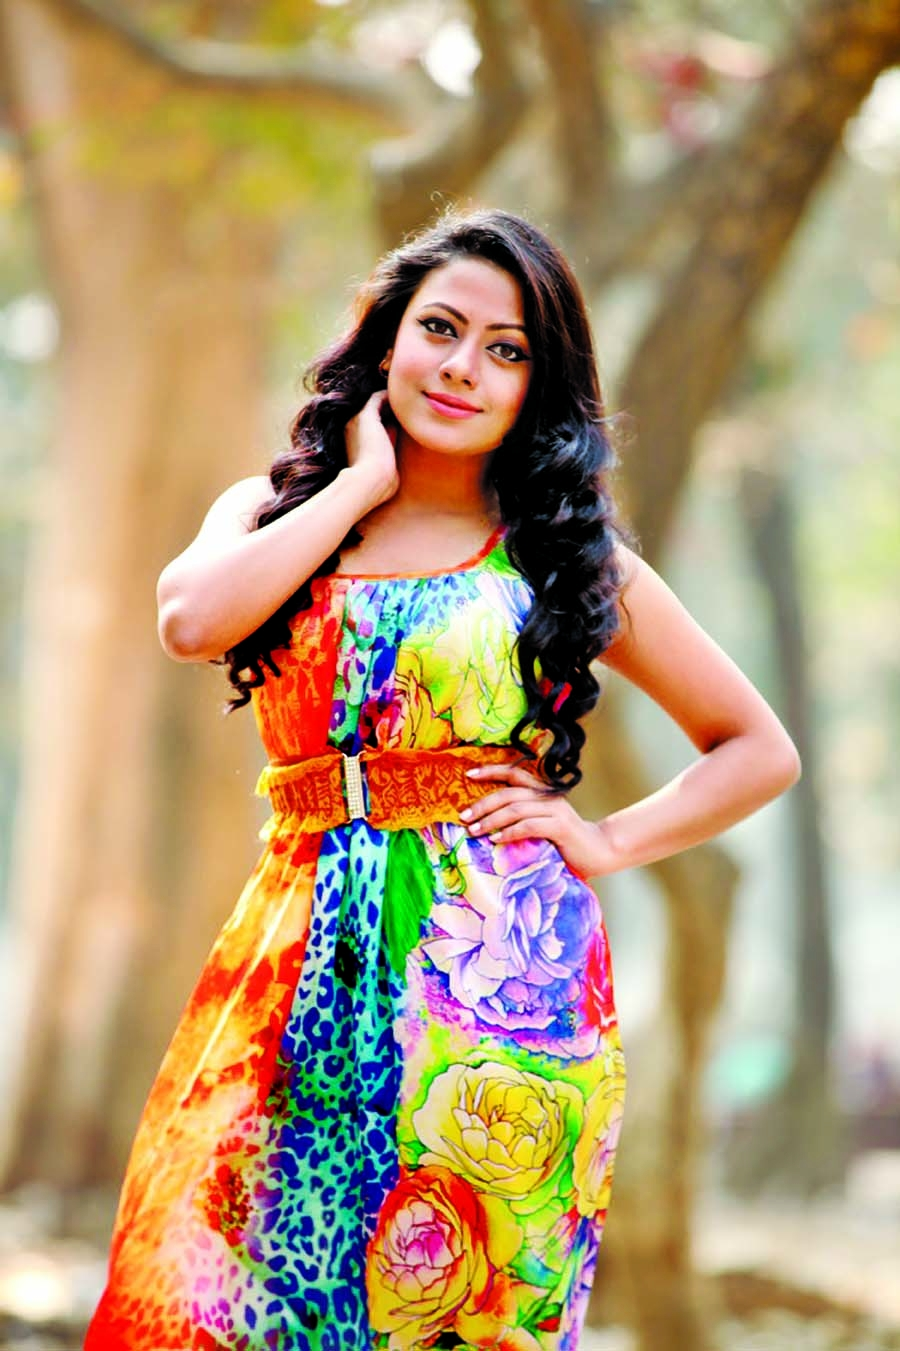 Asha to play in role of Shiri